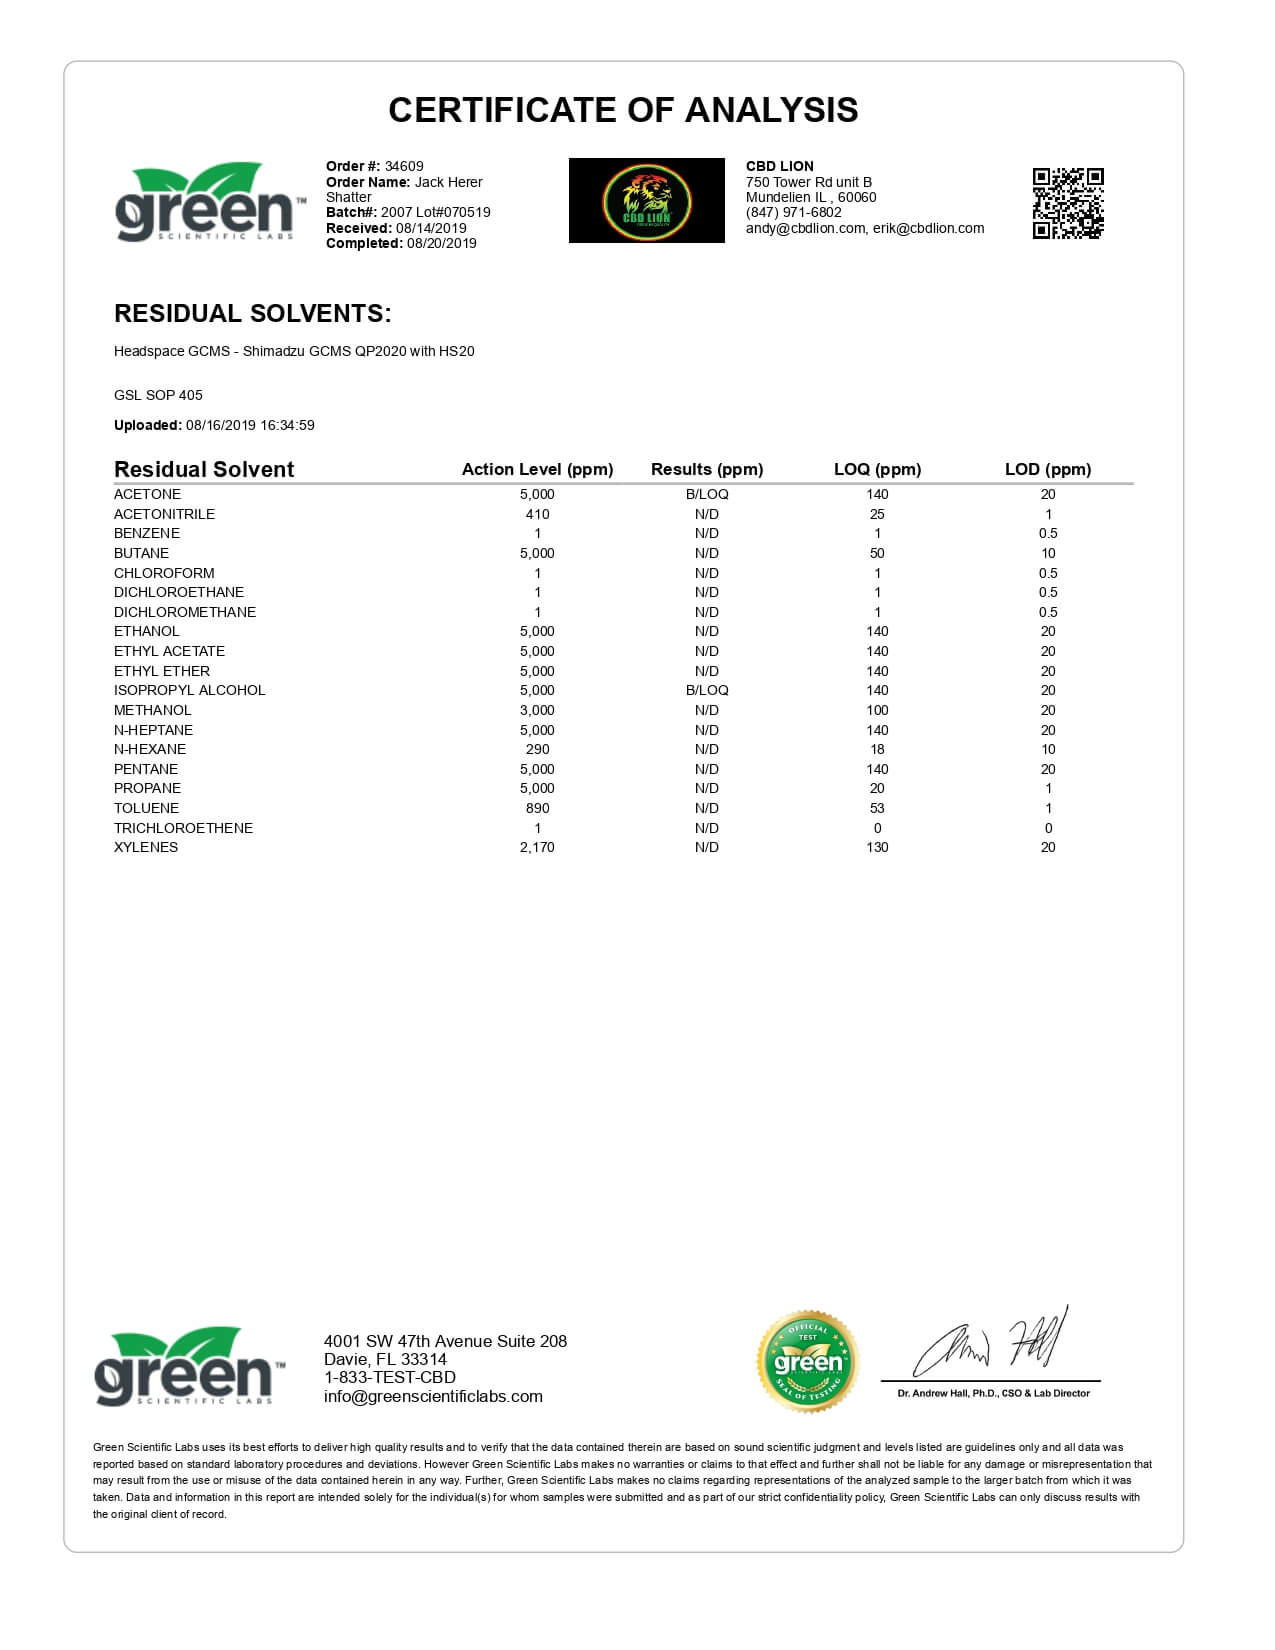 CBD Lion CBD Concentrate Jack Herer Shatter 1g Lab Report